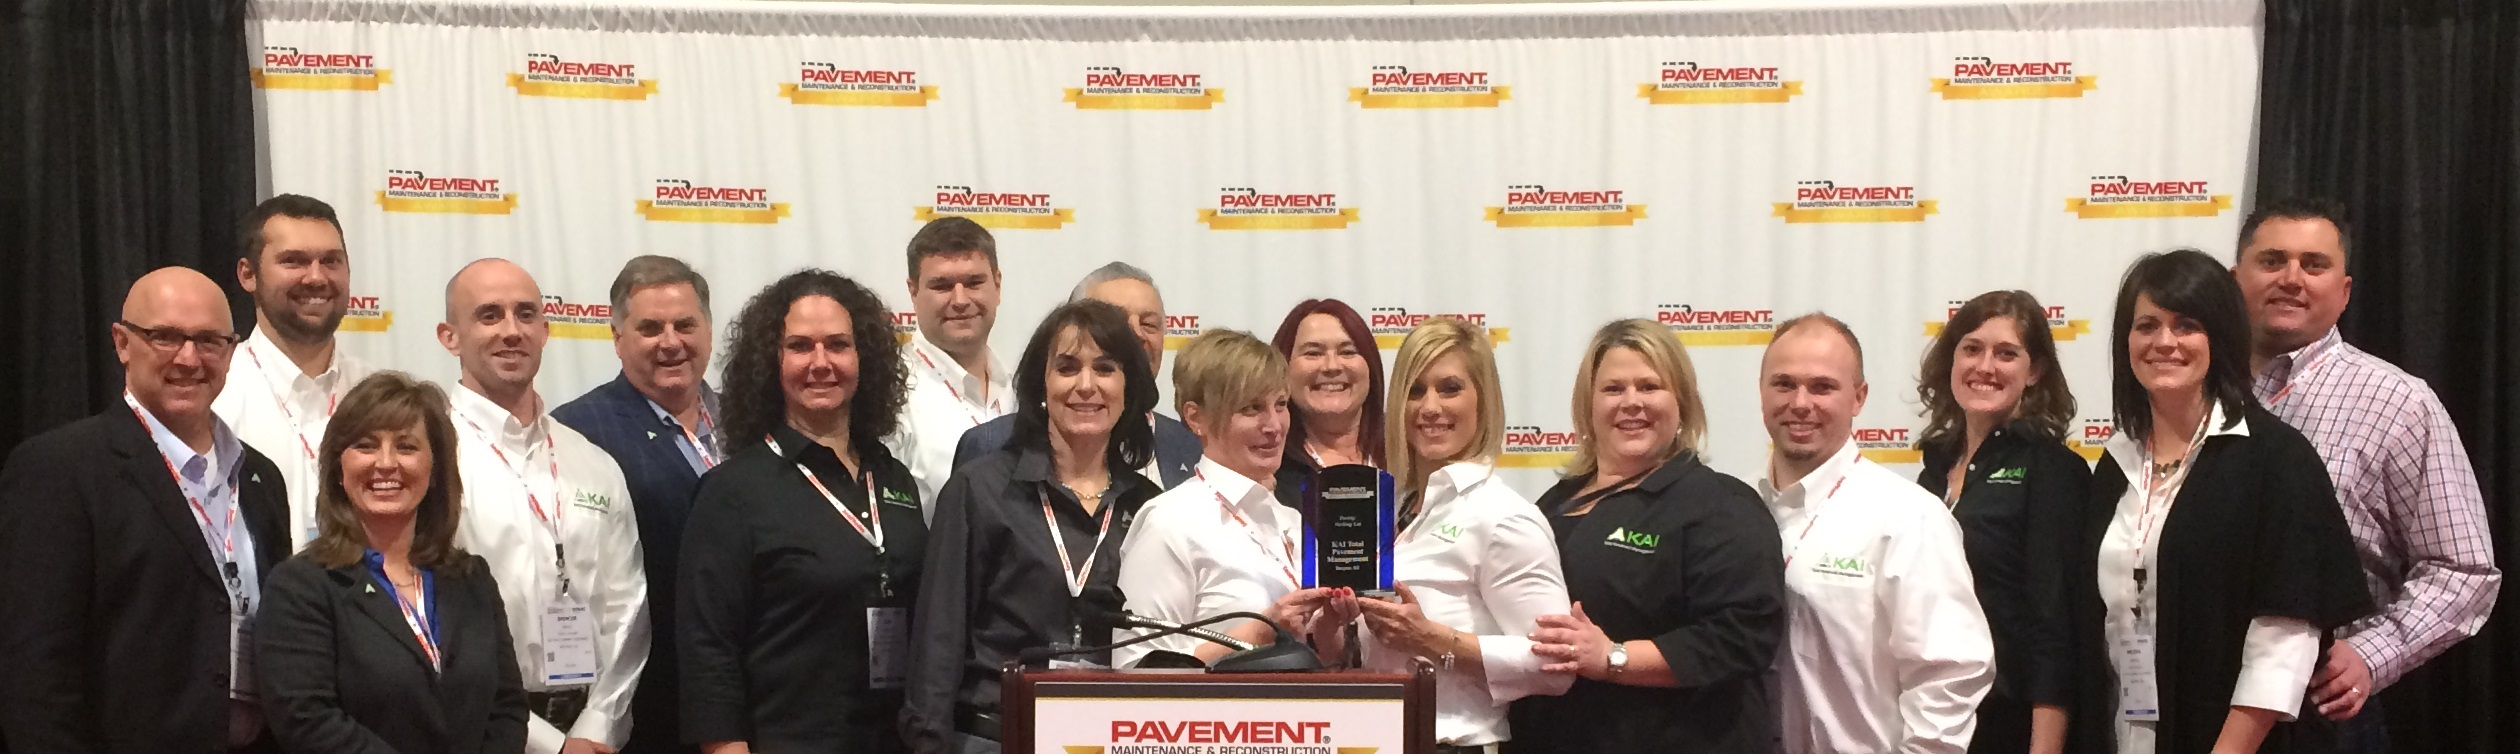 Award winning national paver K.A.I.